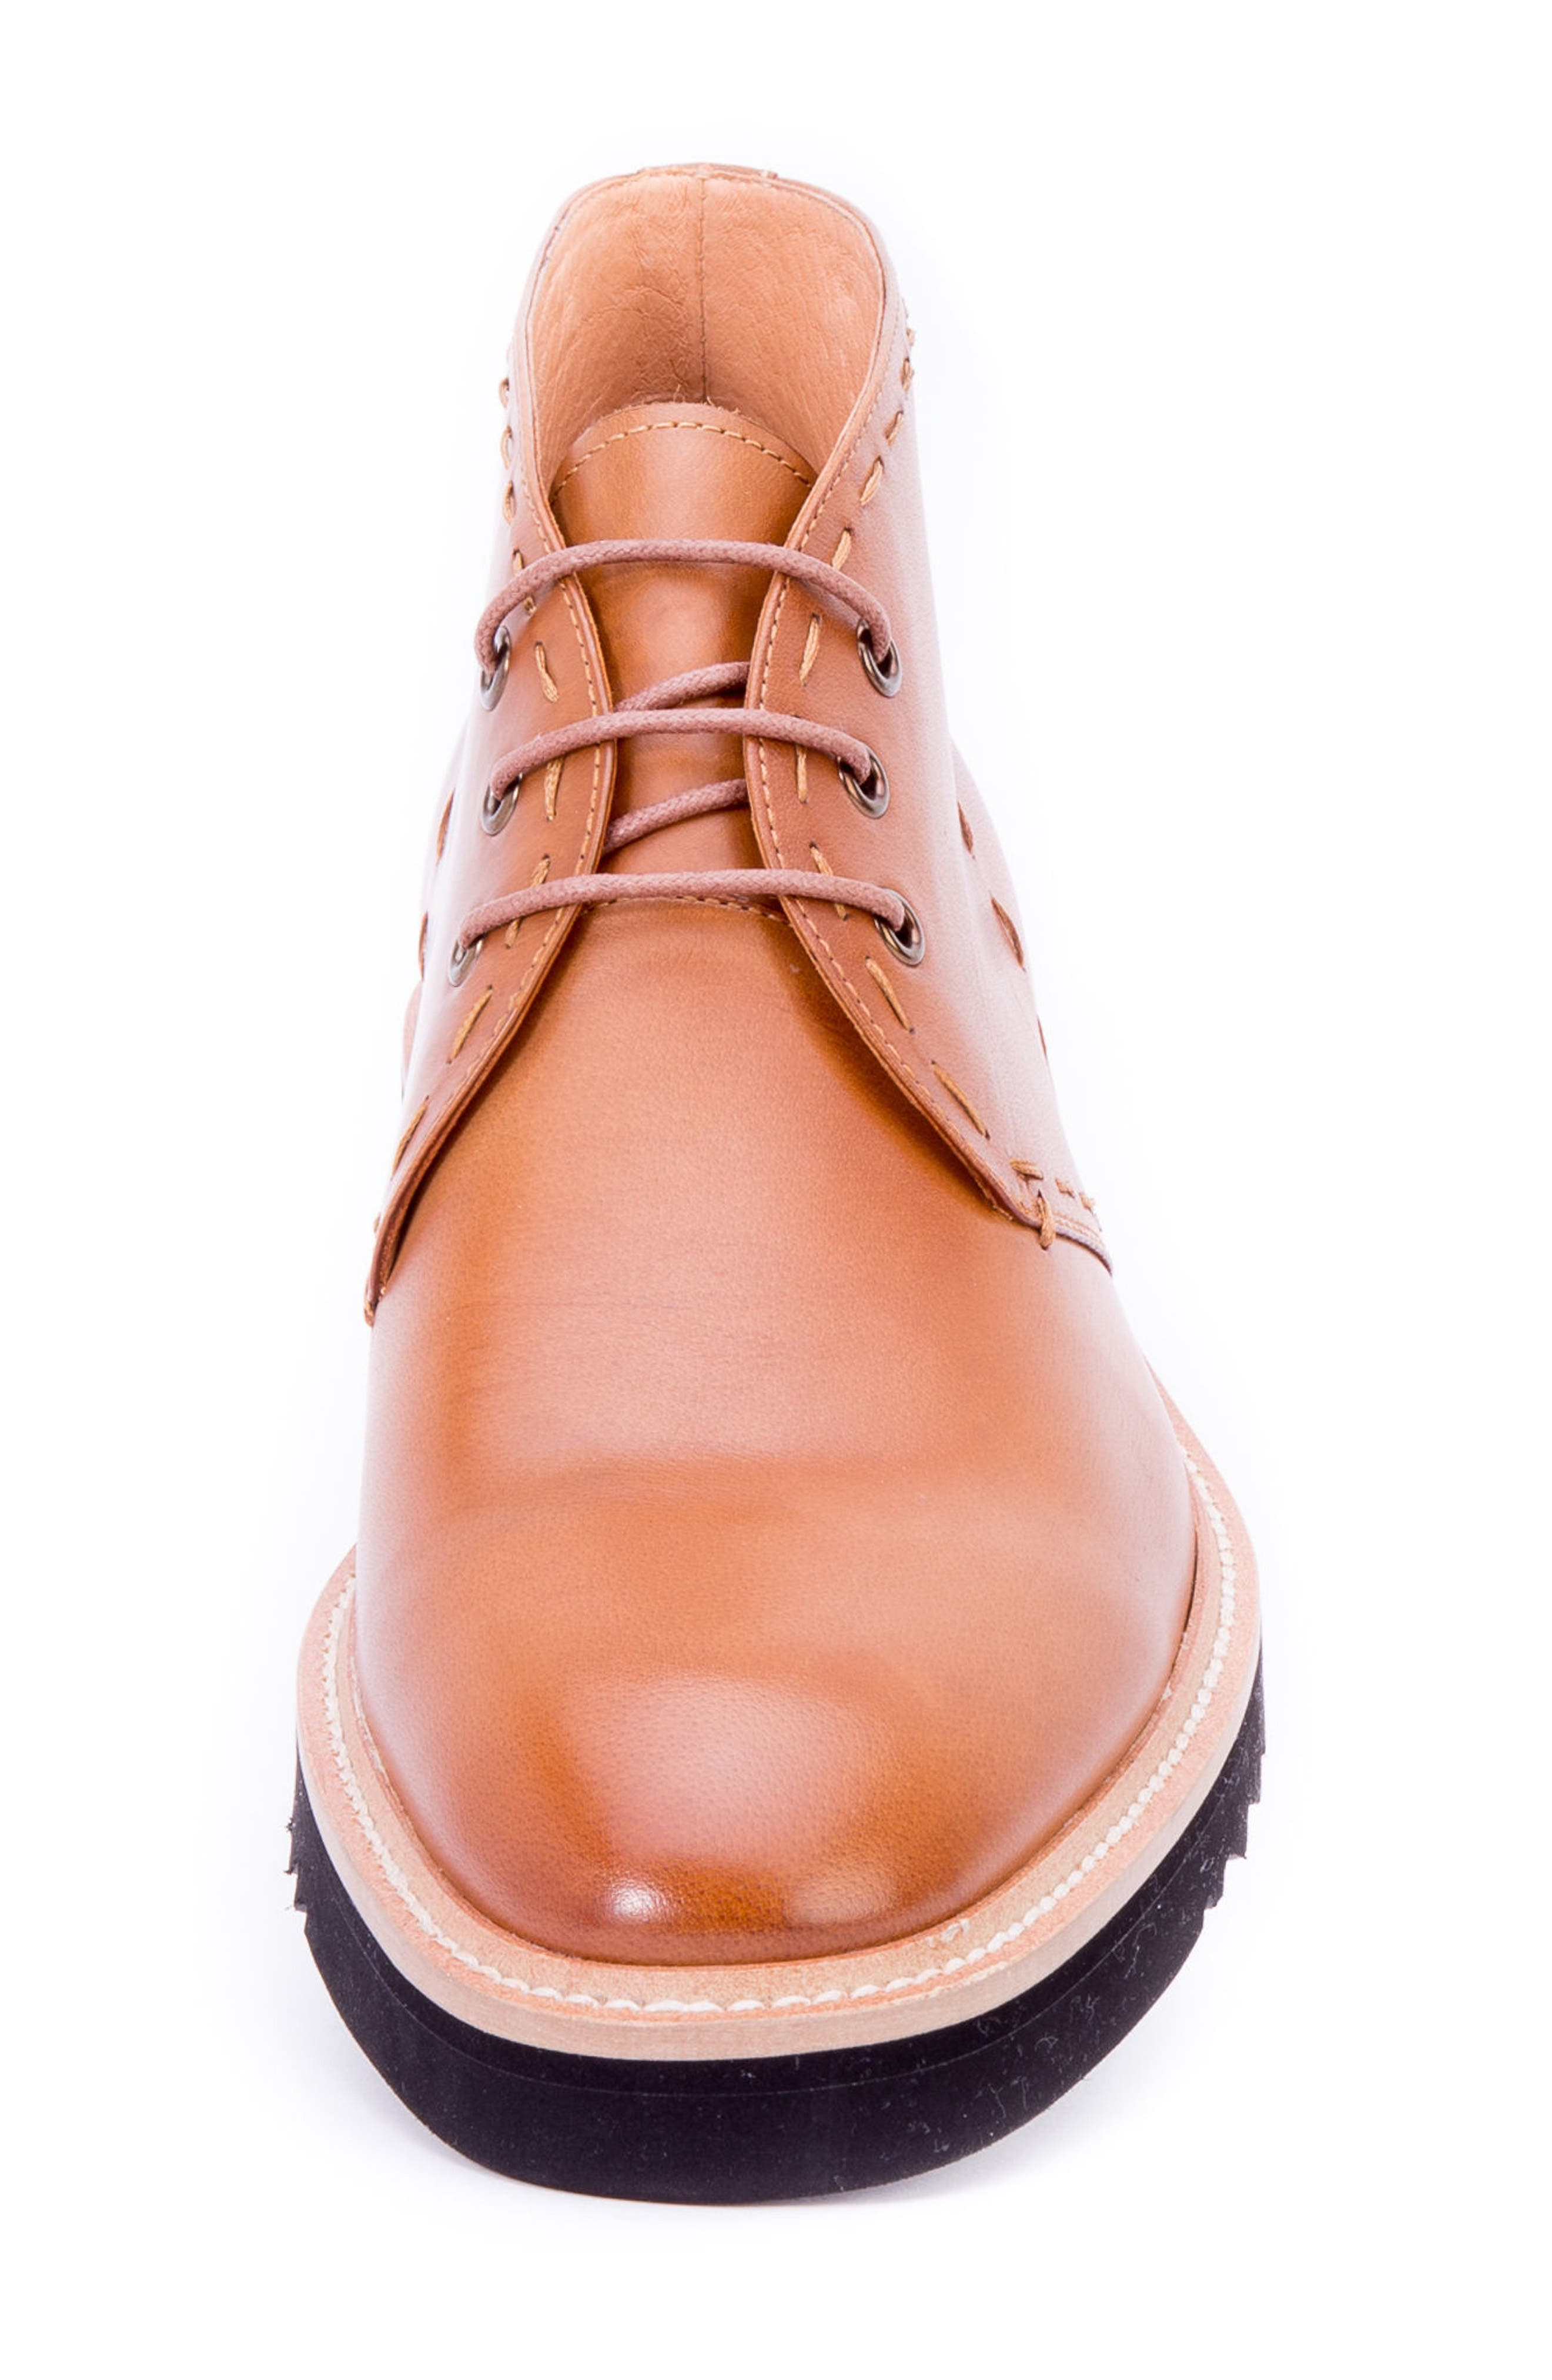 Lombardo Chukka Boot,                             Alternate thumbnail 4, color,                             COGNAC LEATHER